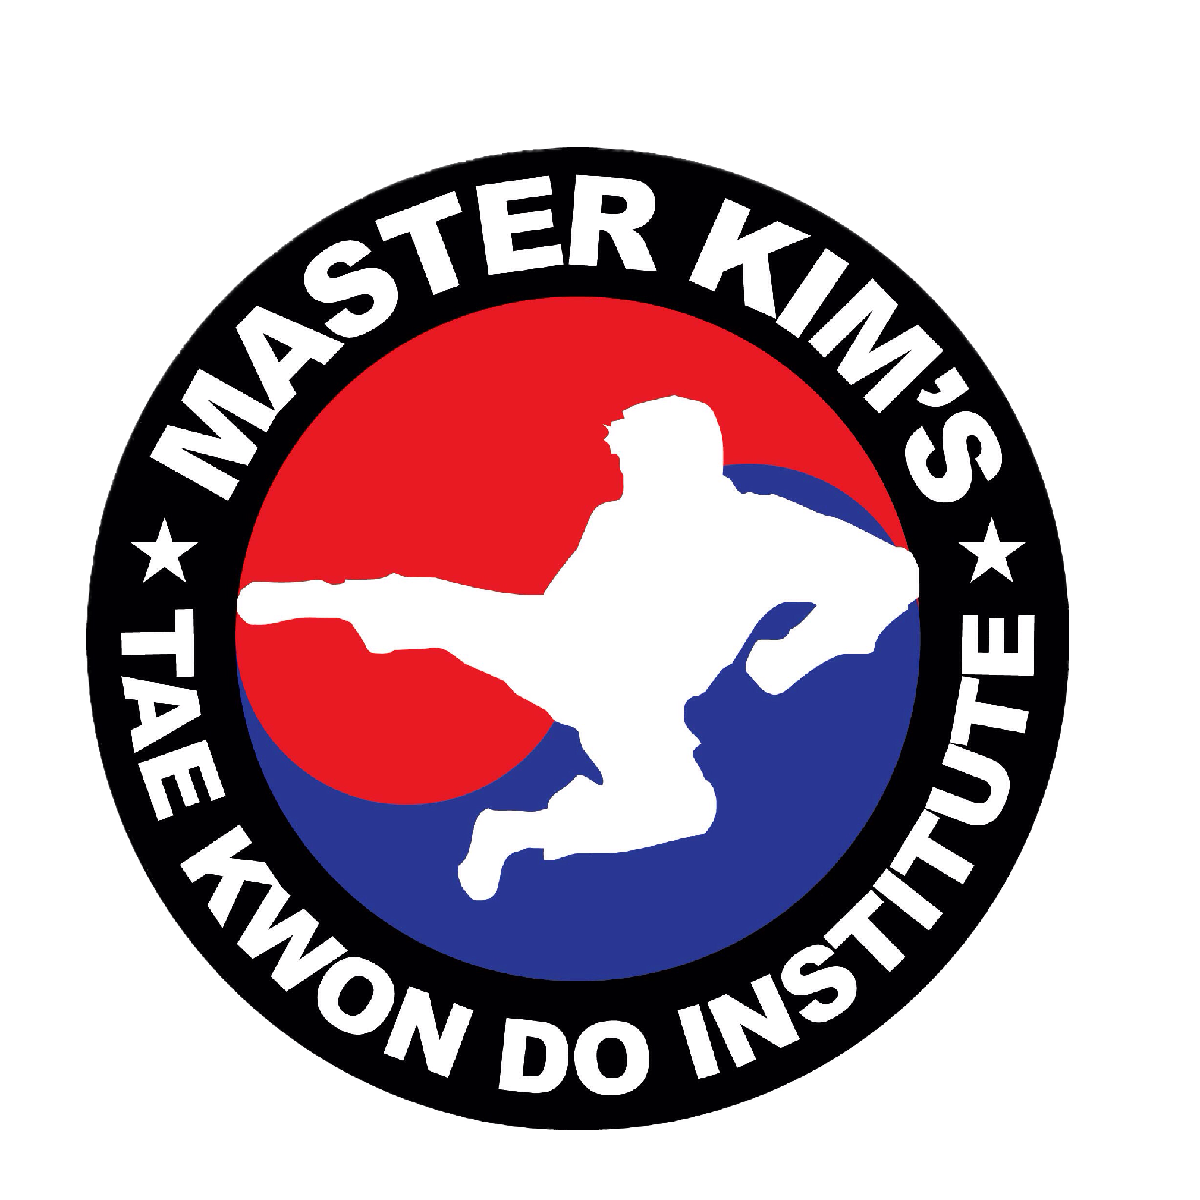 Tae Kwon Do Training Center